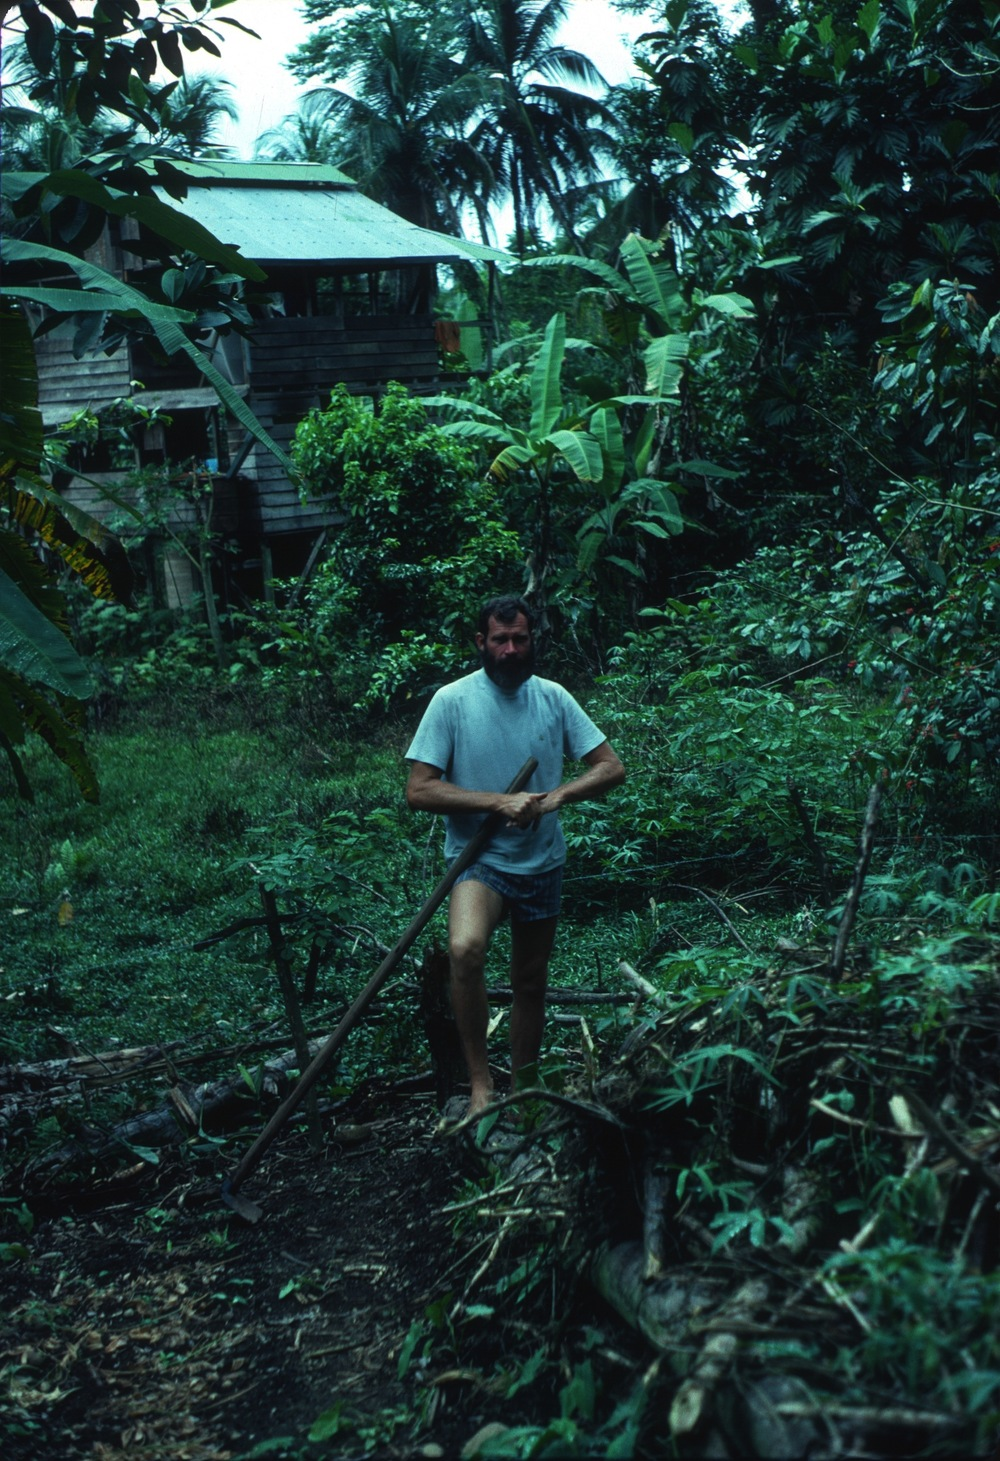 DM_001_009    Mel at his house    Cocles    11/1/1980    Mel in his garden   Photographer: Dan Miller